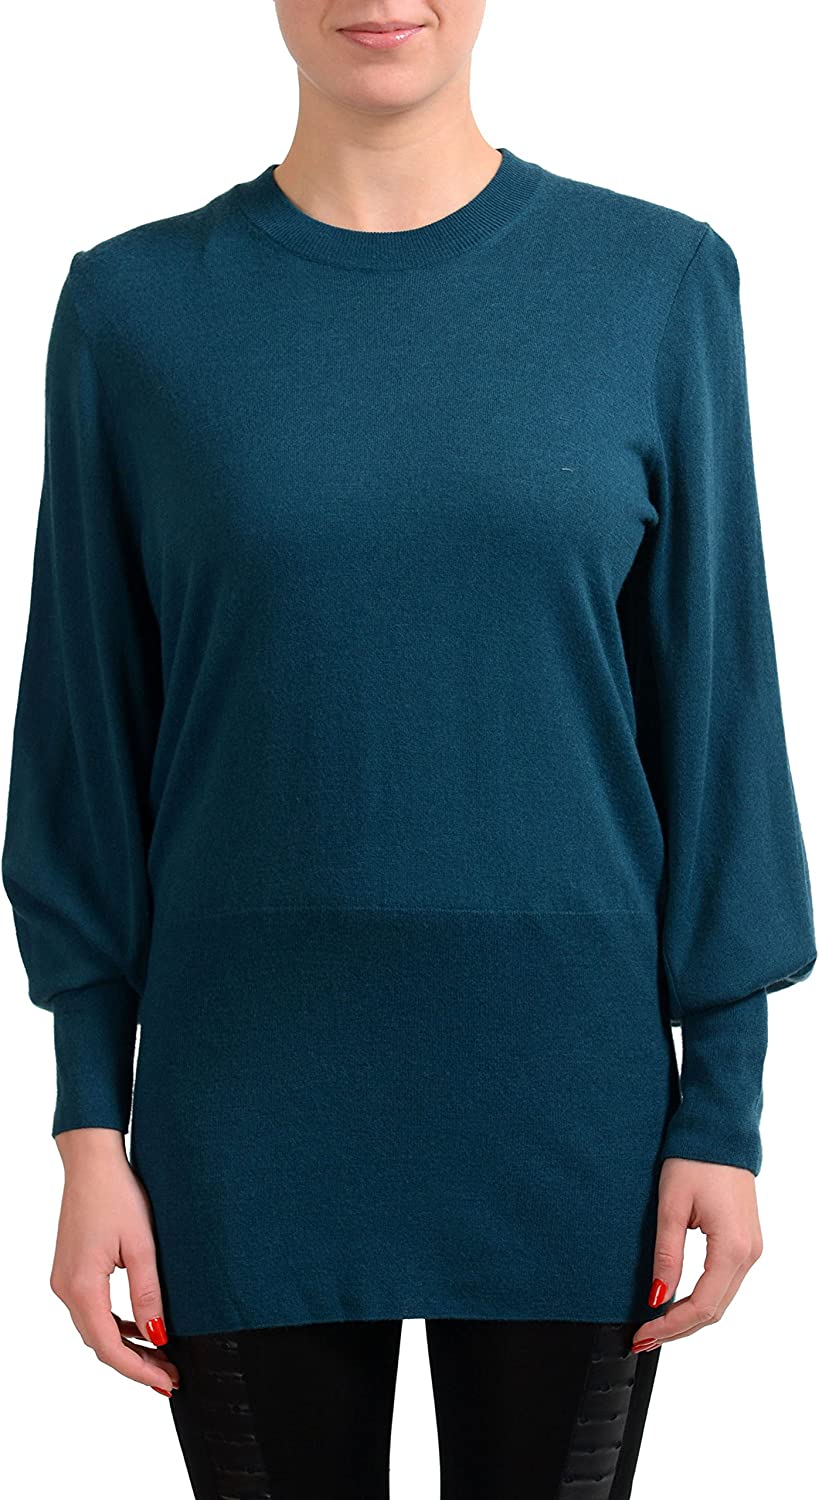 Maison Margiela 1 Wool Pine Green Women's Crewneck Sweater US S IT 40